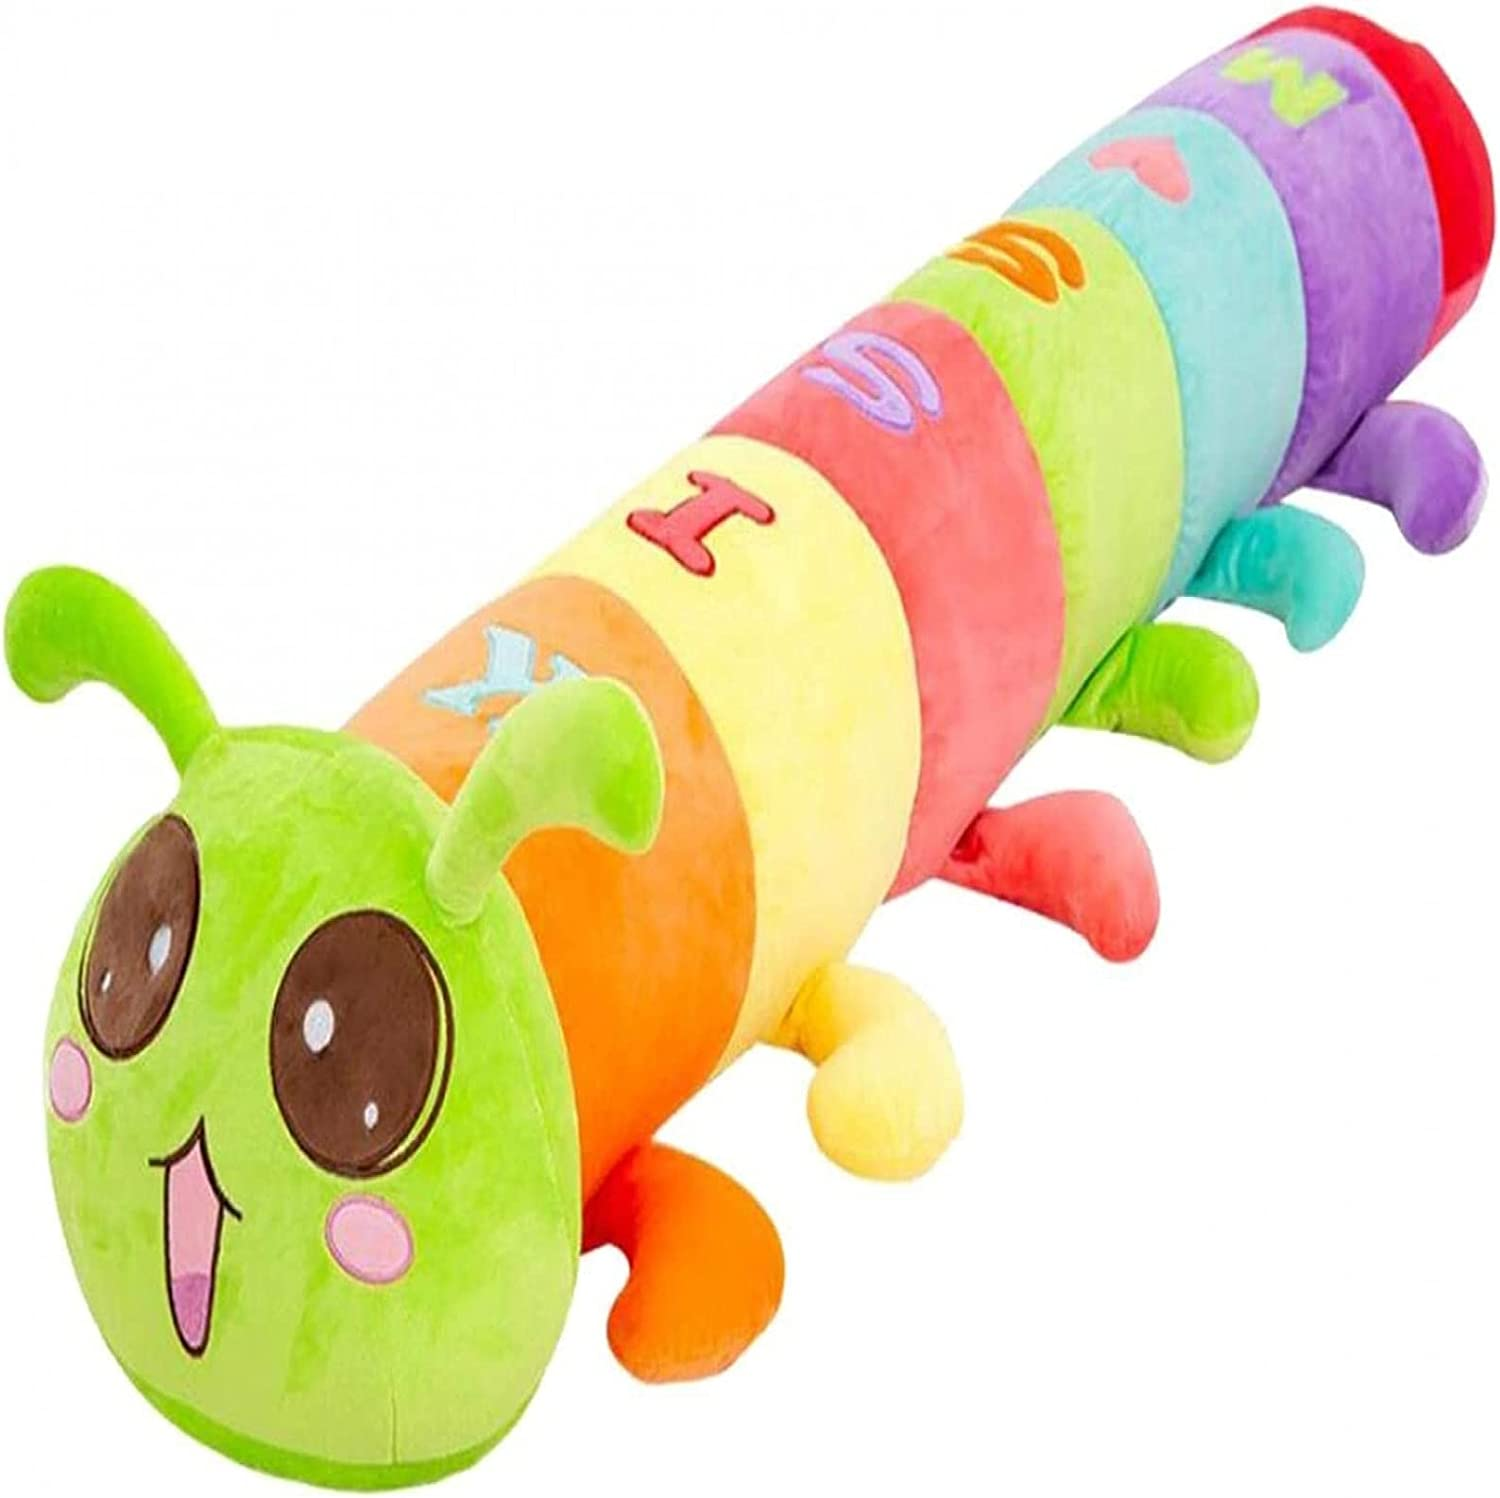 Plush All items free shipping Toys Clearance SALE! Limited time! Cute Caterpillar Stuffing Comfortable Shape